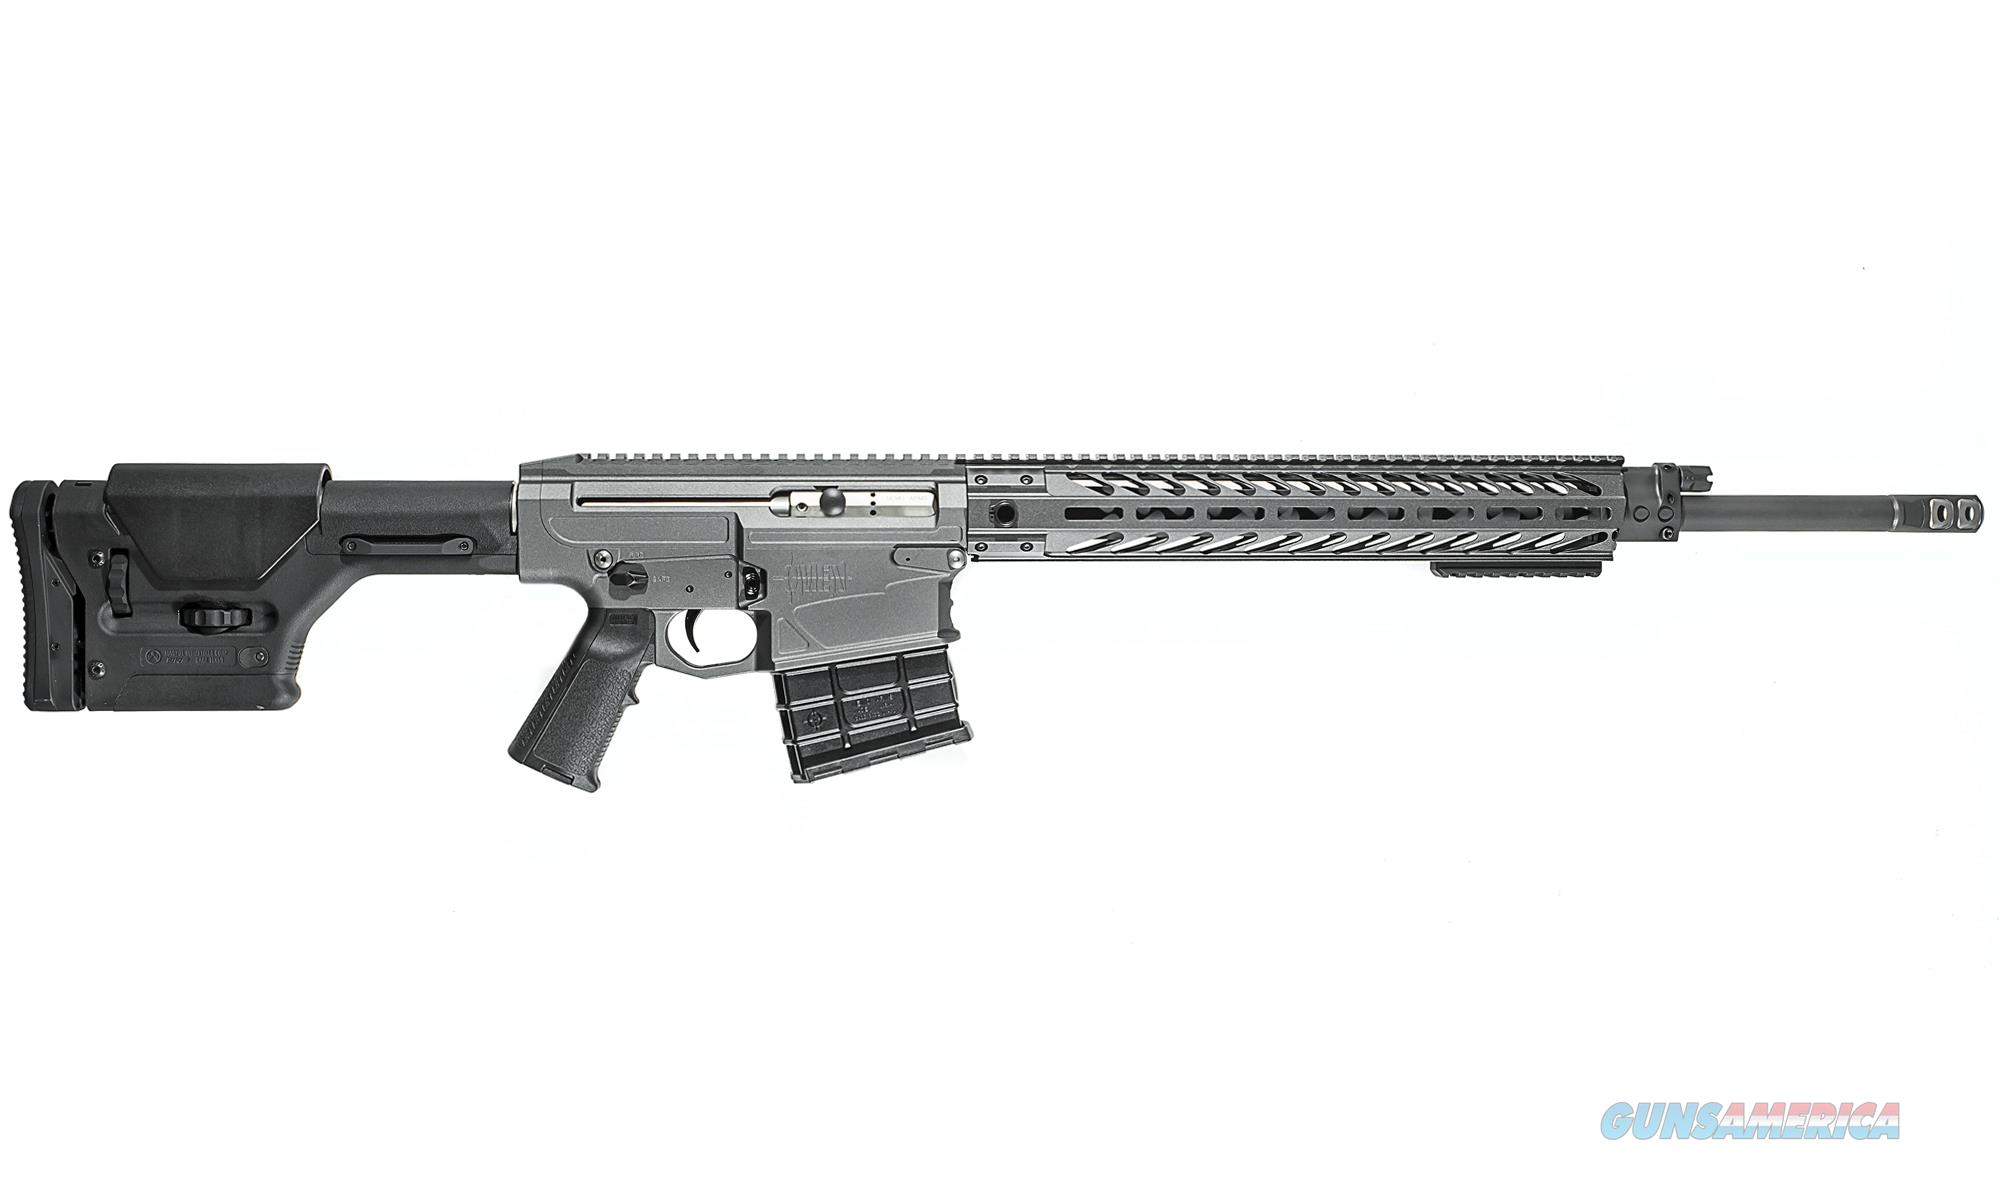 NEMO ARMS OMEN Match 3.0 300 Win Mag AR  Guns > Rifles > AR-15 Rifles - Small Manufacturers > Complete Rifle